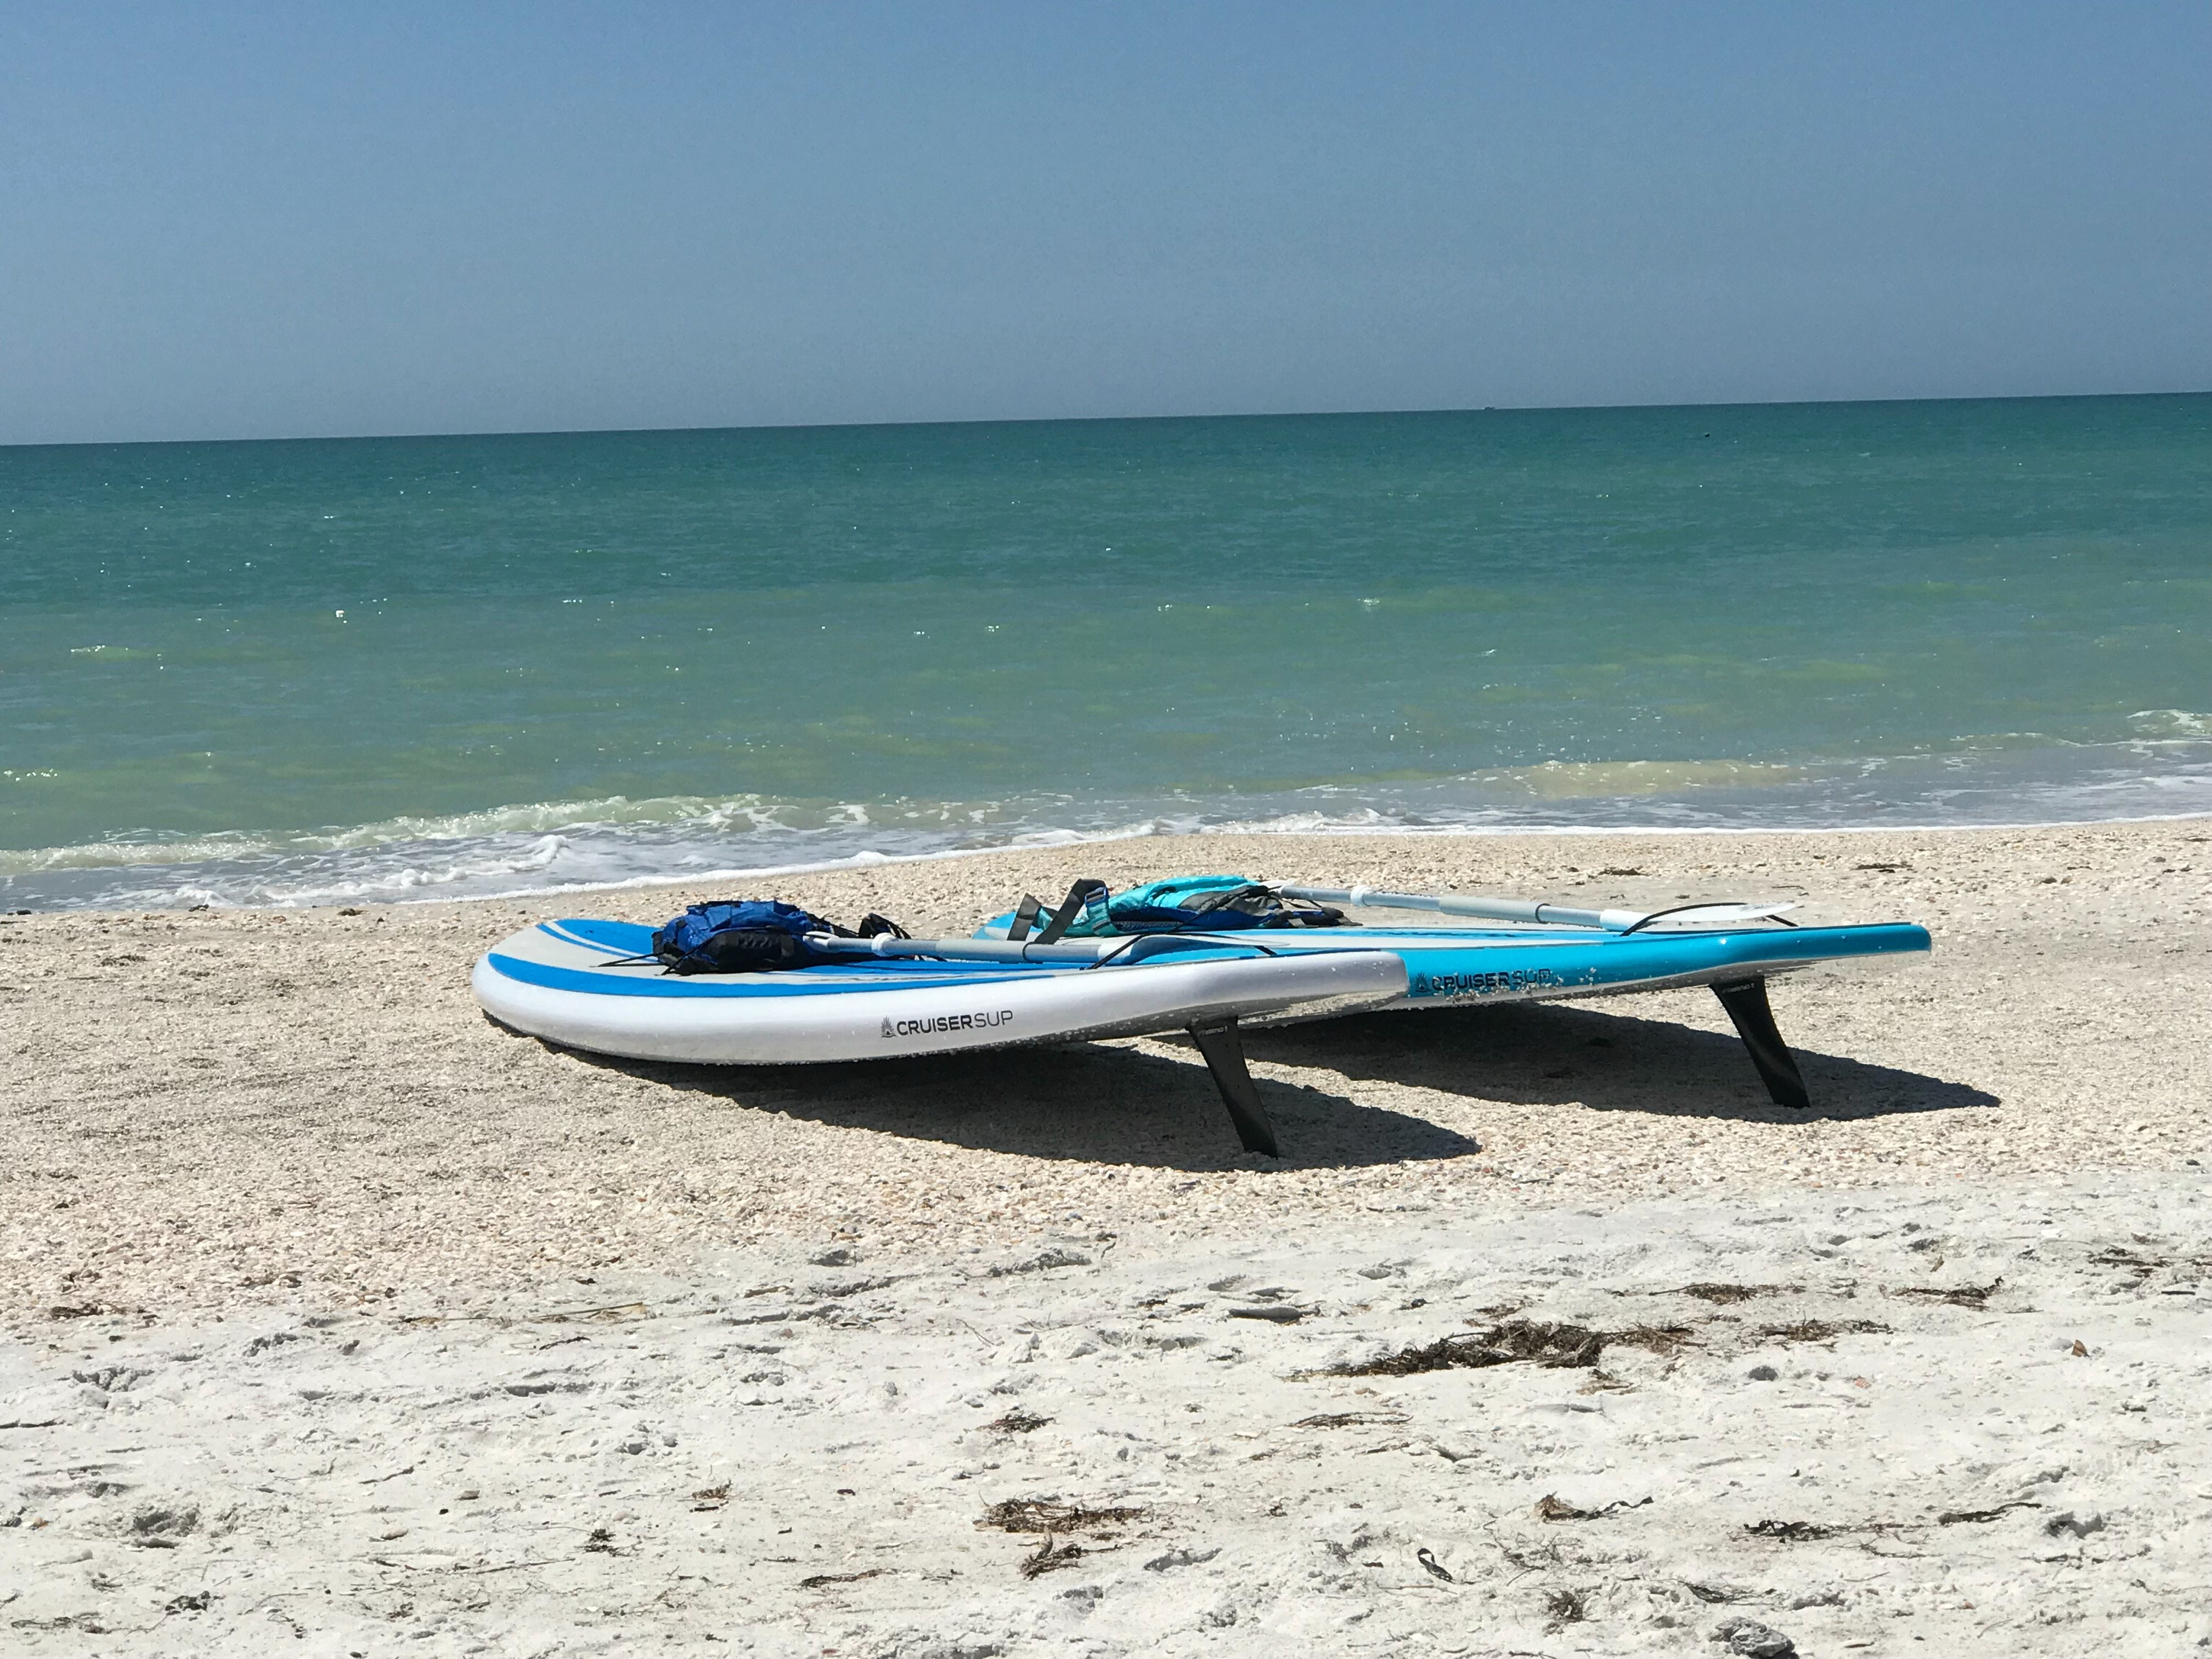 Great day of SUPing!